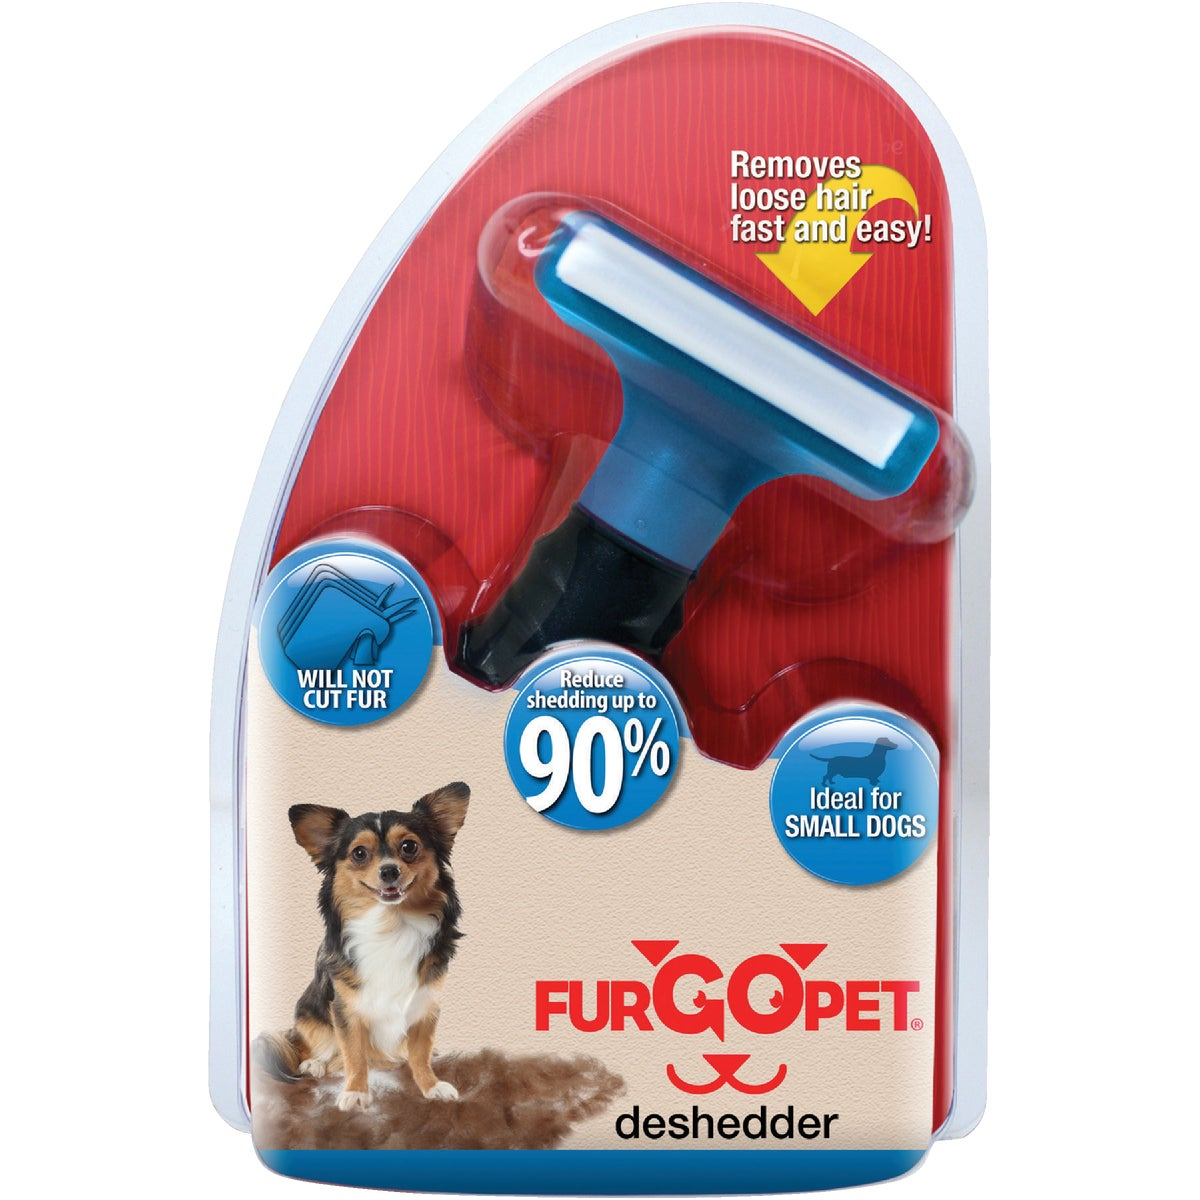 FURGO PET DOG DESHEDDER - FUR00208 by United Pet Group